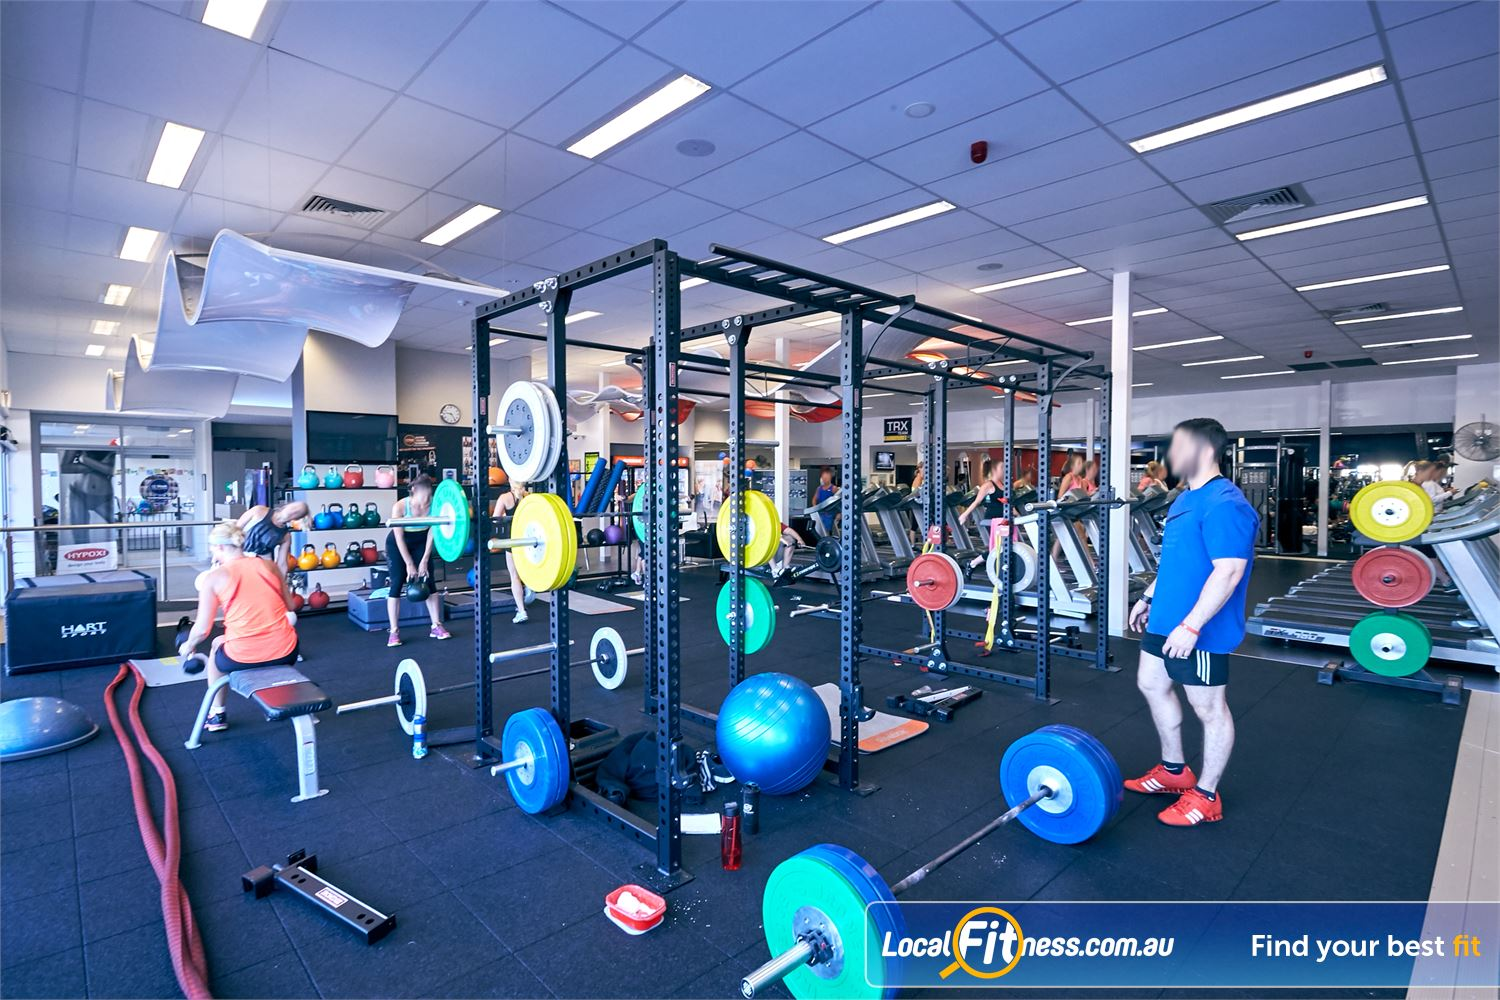 Goodlife Health Clubs Cross Roads Westbourne Park Our functional training area is fully equipped with strength cage, wall balls, kettlebells and more.